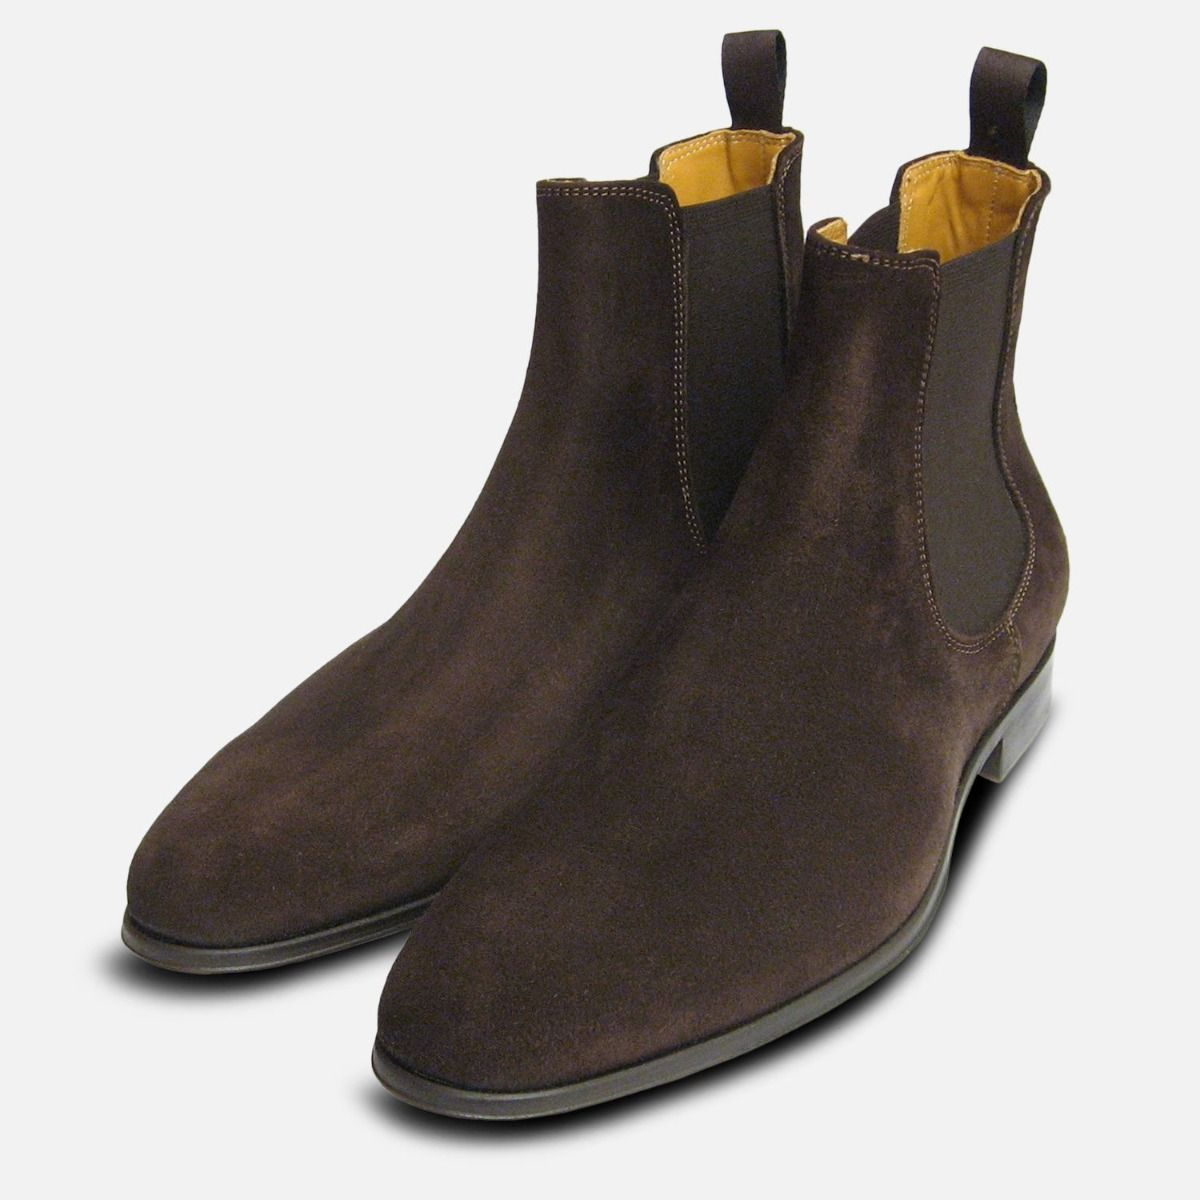 56f798cf78e Brown Suede Italian Chelsea Boots for Men